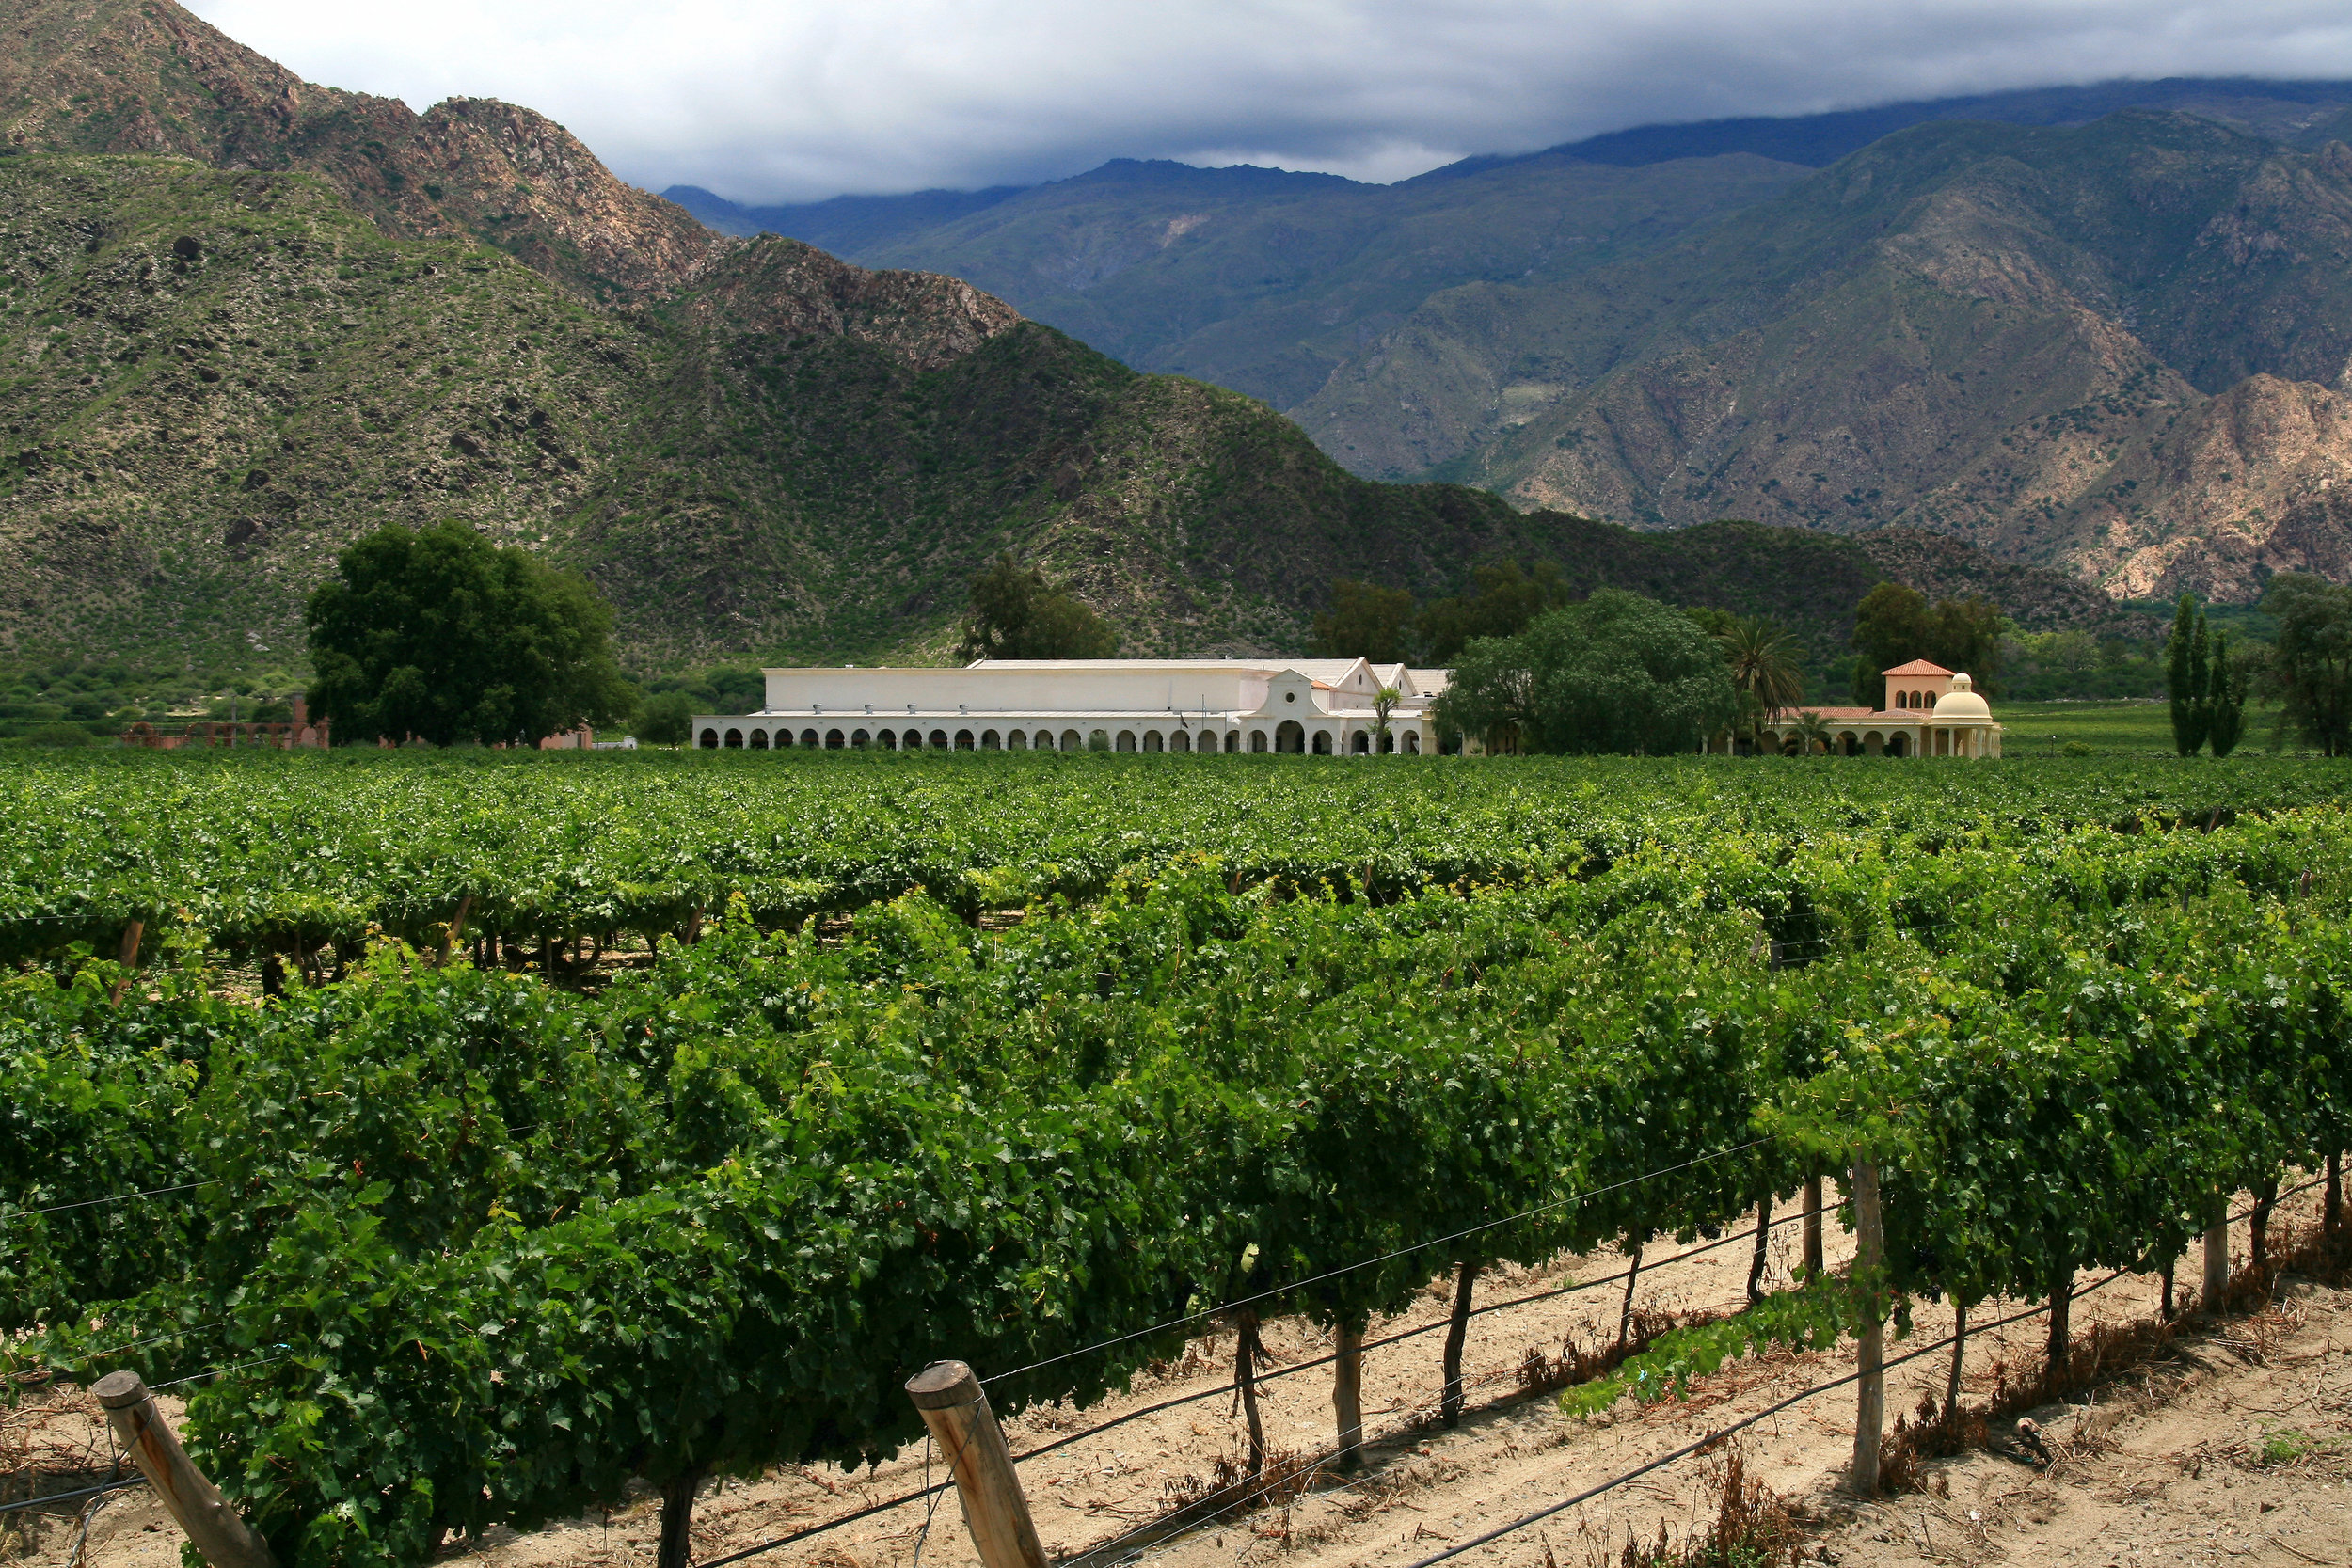 Malbec from the Northwest region of Argentina is not as inky in color as those found in the Mendoza region but their more peppery notes allow for slightly different food pairing options. Photo courtesy of Tanenhaus/Flickr.